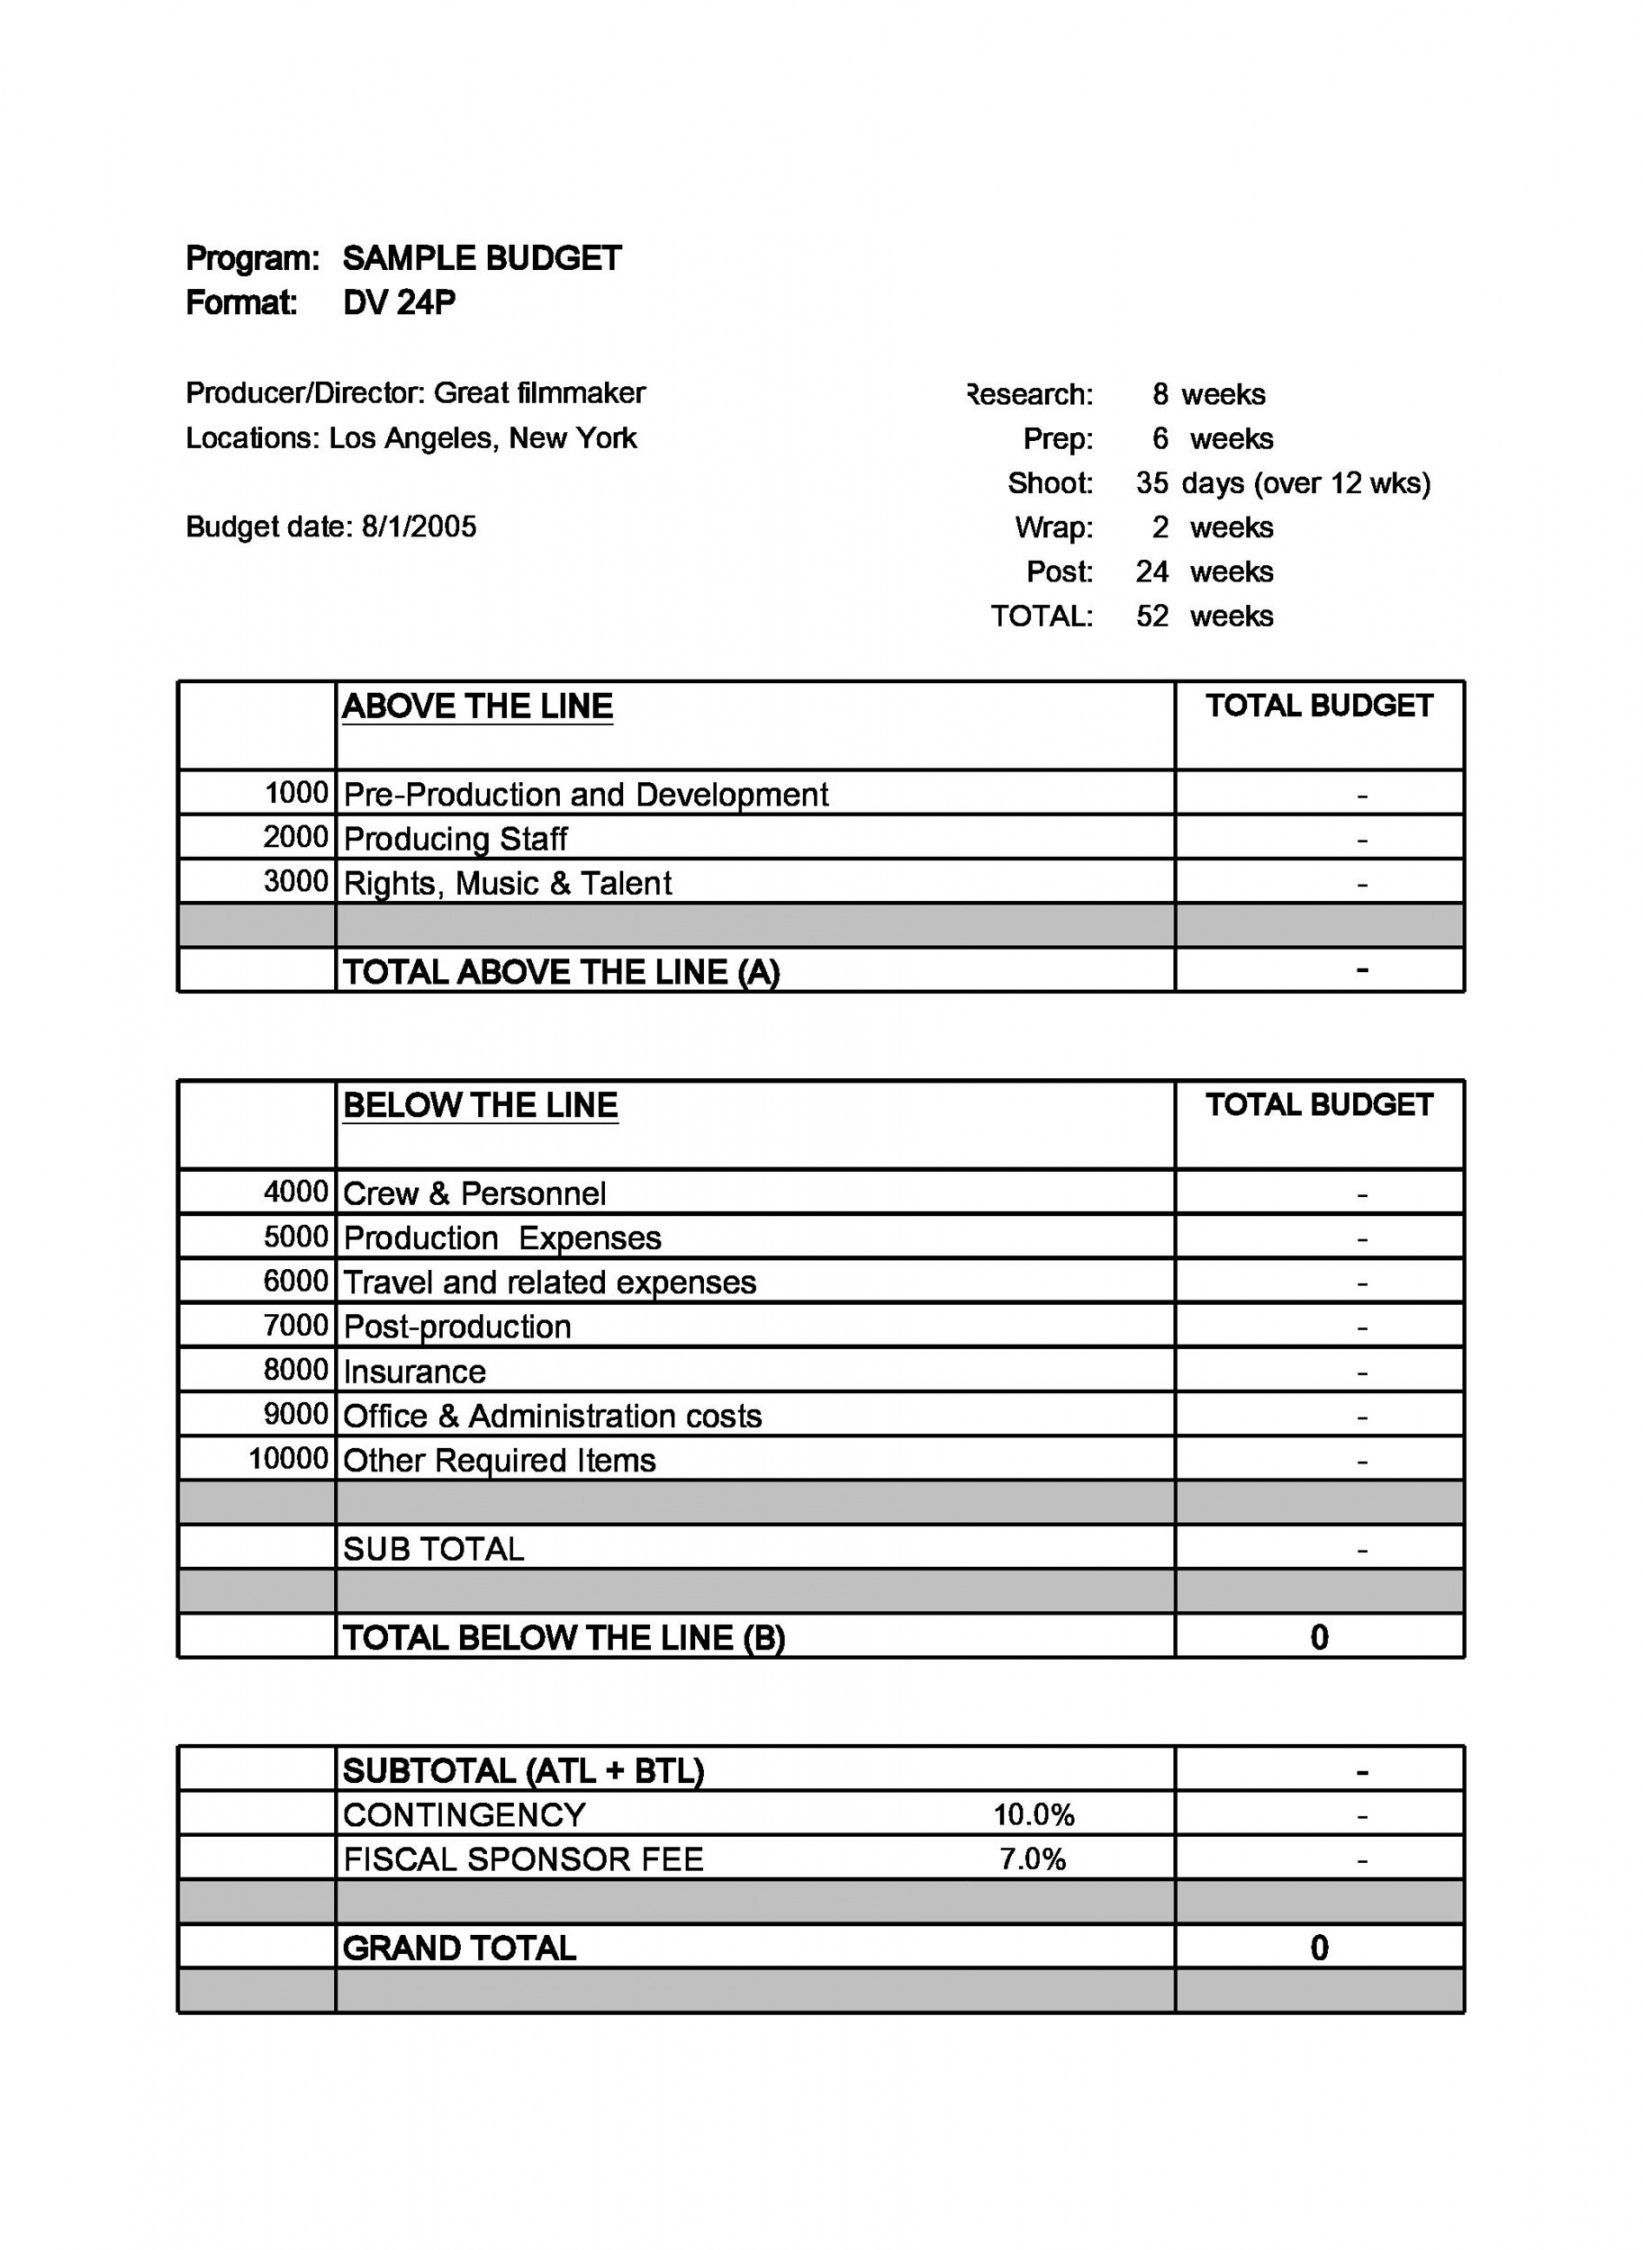 Browse Our Image Of Documentary Film Budget Template In 2020 Budget Template Excel Budget Template Budgeting